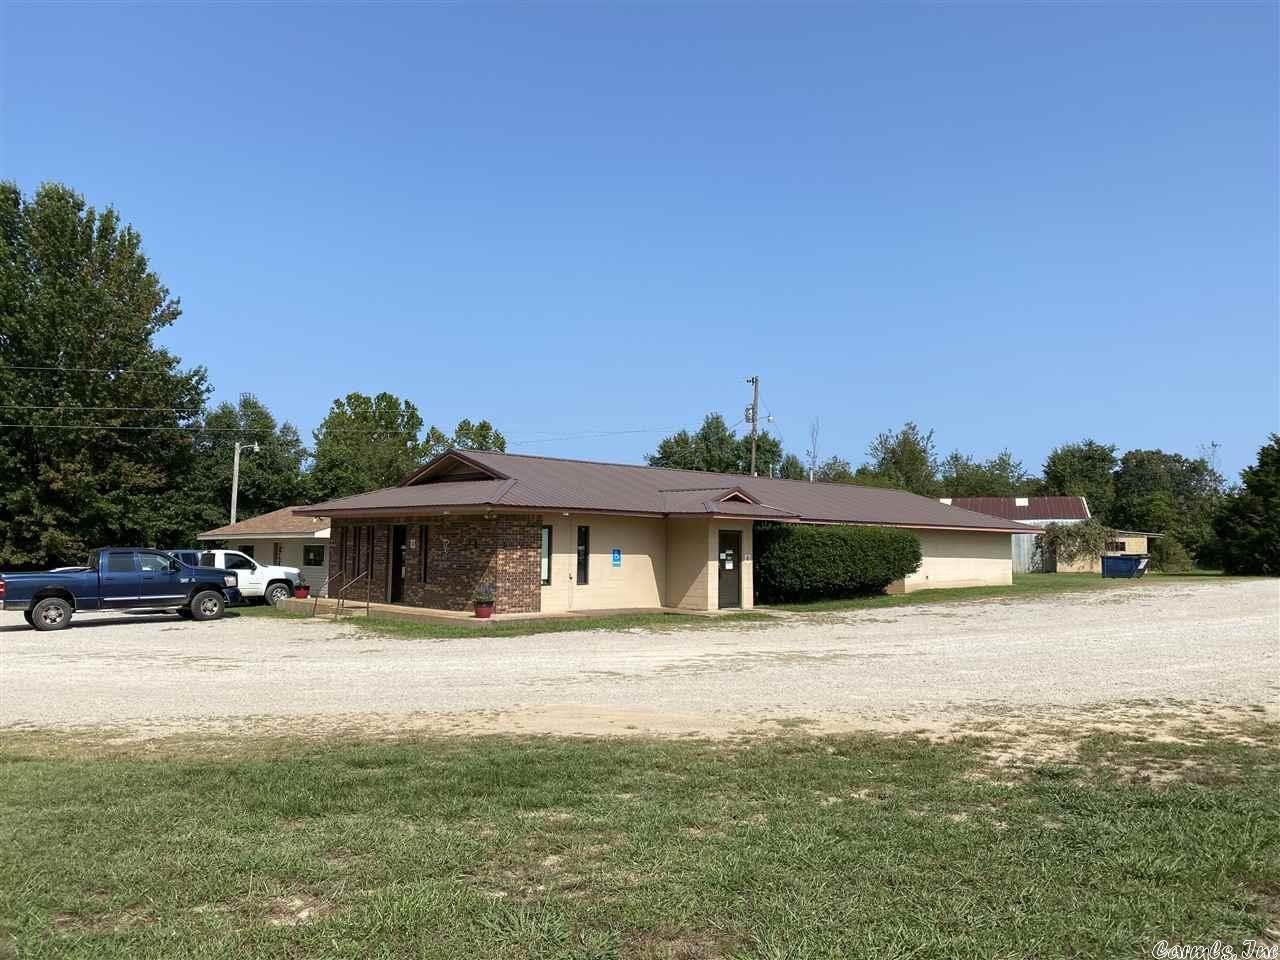 Commercial / Industrial for Sale at 14268 62/412 Highway Ash Flat, Arkansas 72513 United States